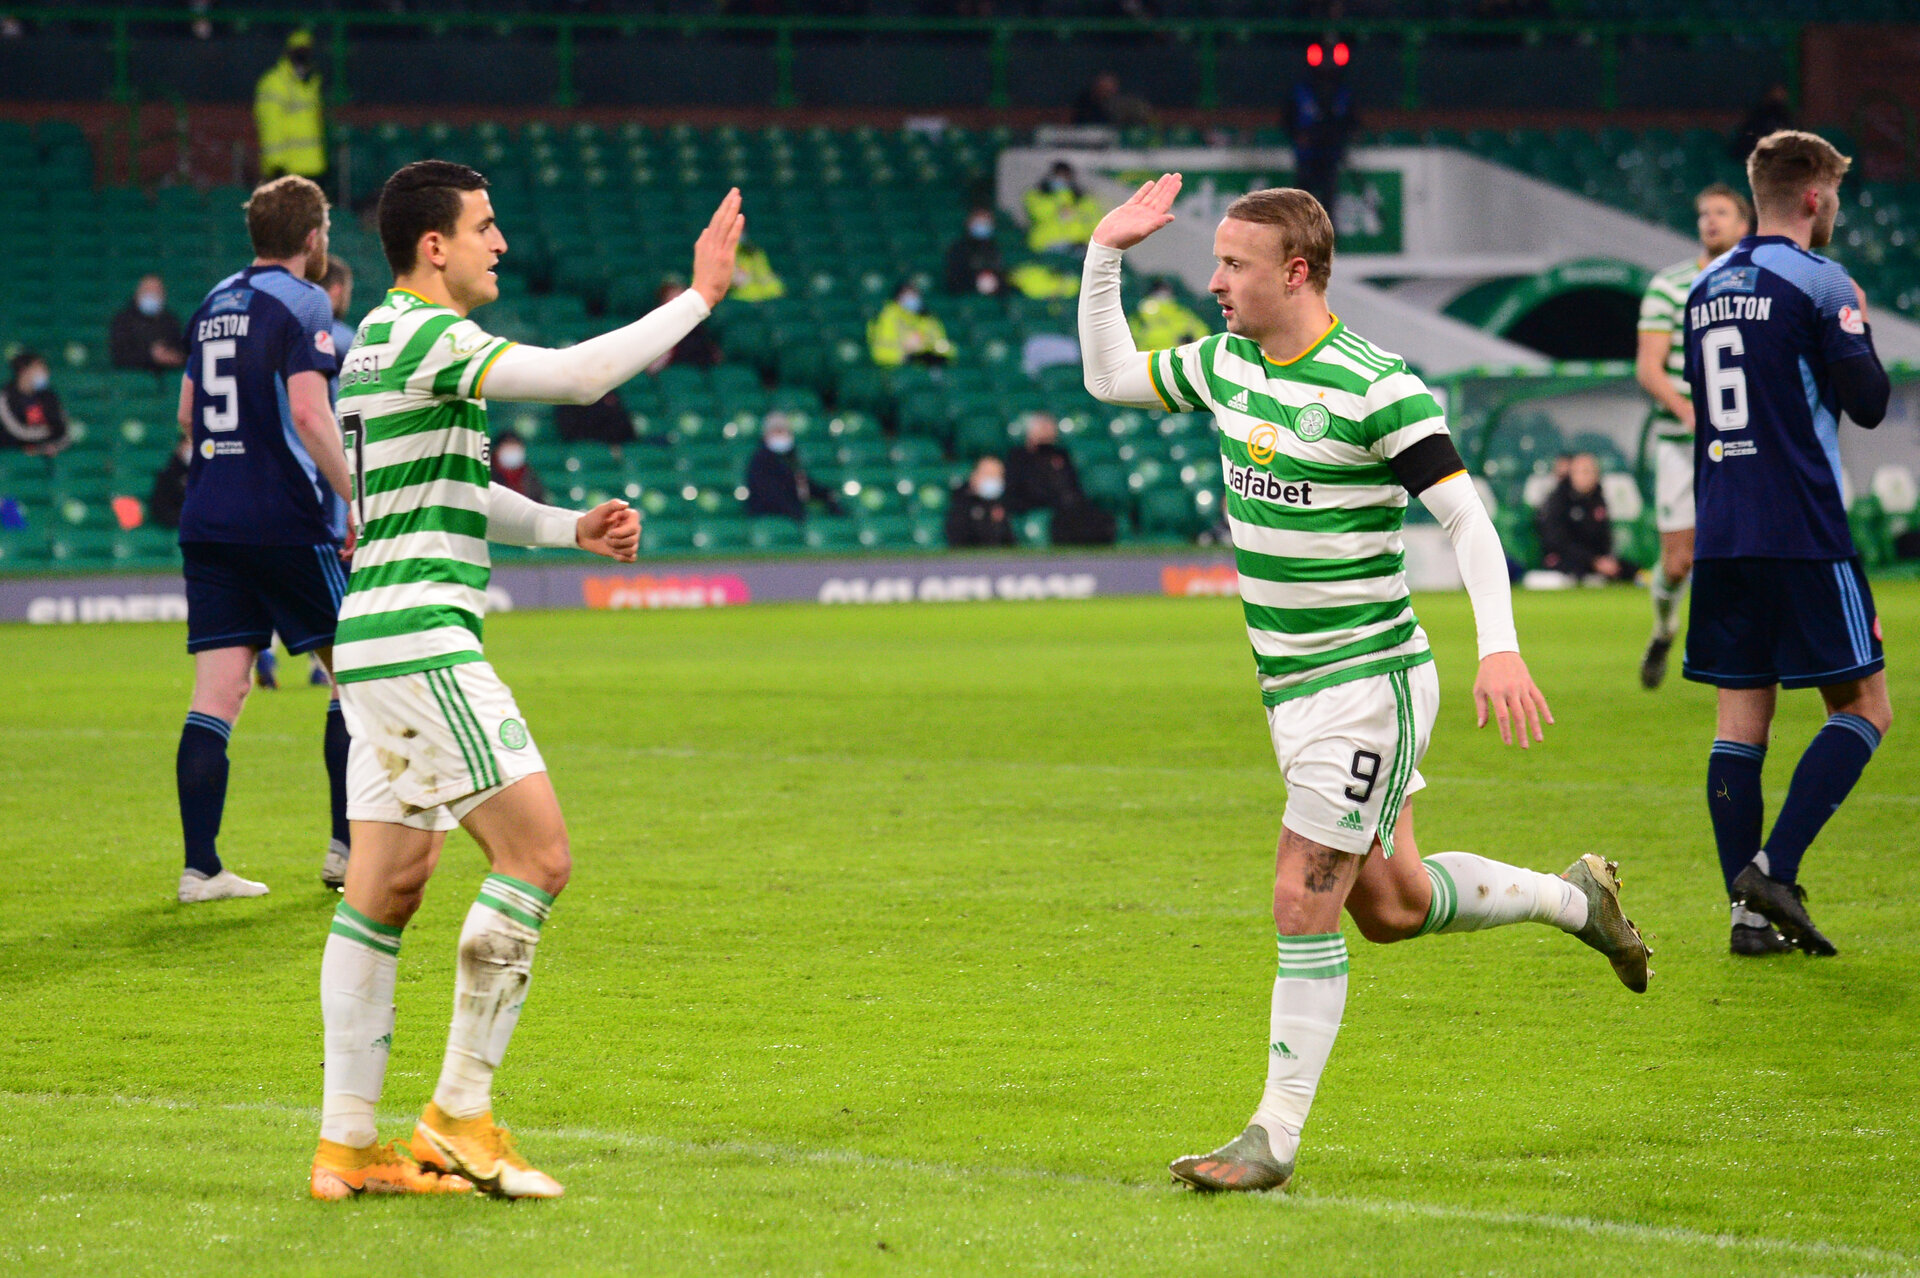 GLASGOW, SCOTLAND - JANUARY 27: Leigh Griffiths of Celtic celebrates after scoring their sides first goal with Mohamed Elyounoussi during the Ladbrokes Scottish Premiership match between Celtic and Hamilton Academical at Celtic Park on January 27, 2021 in Glasgow, Scotland. Sporting stadiums around the UK remain under strict restrictions due to the Coronavirus Pandemic as Government social distancing laws prohibit fans inside venues resulting in games being played behind closed doors. (Photo by Mark Runnacles/Getty Images)